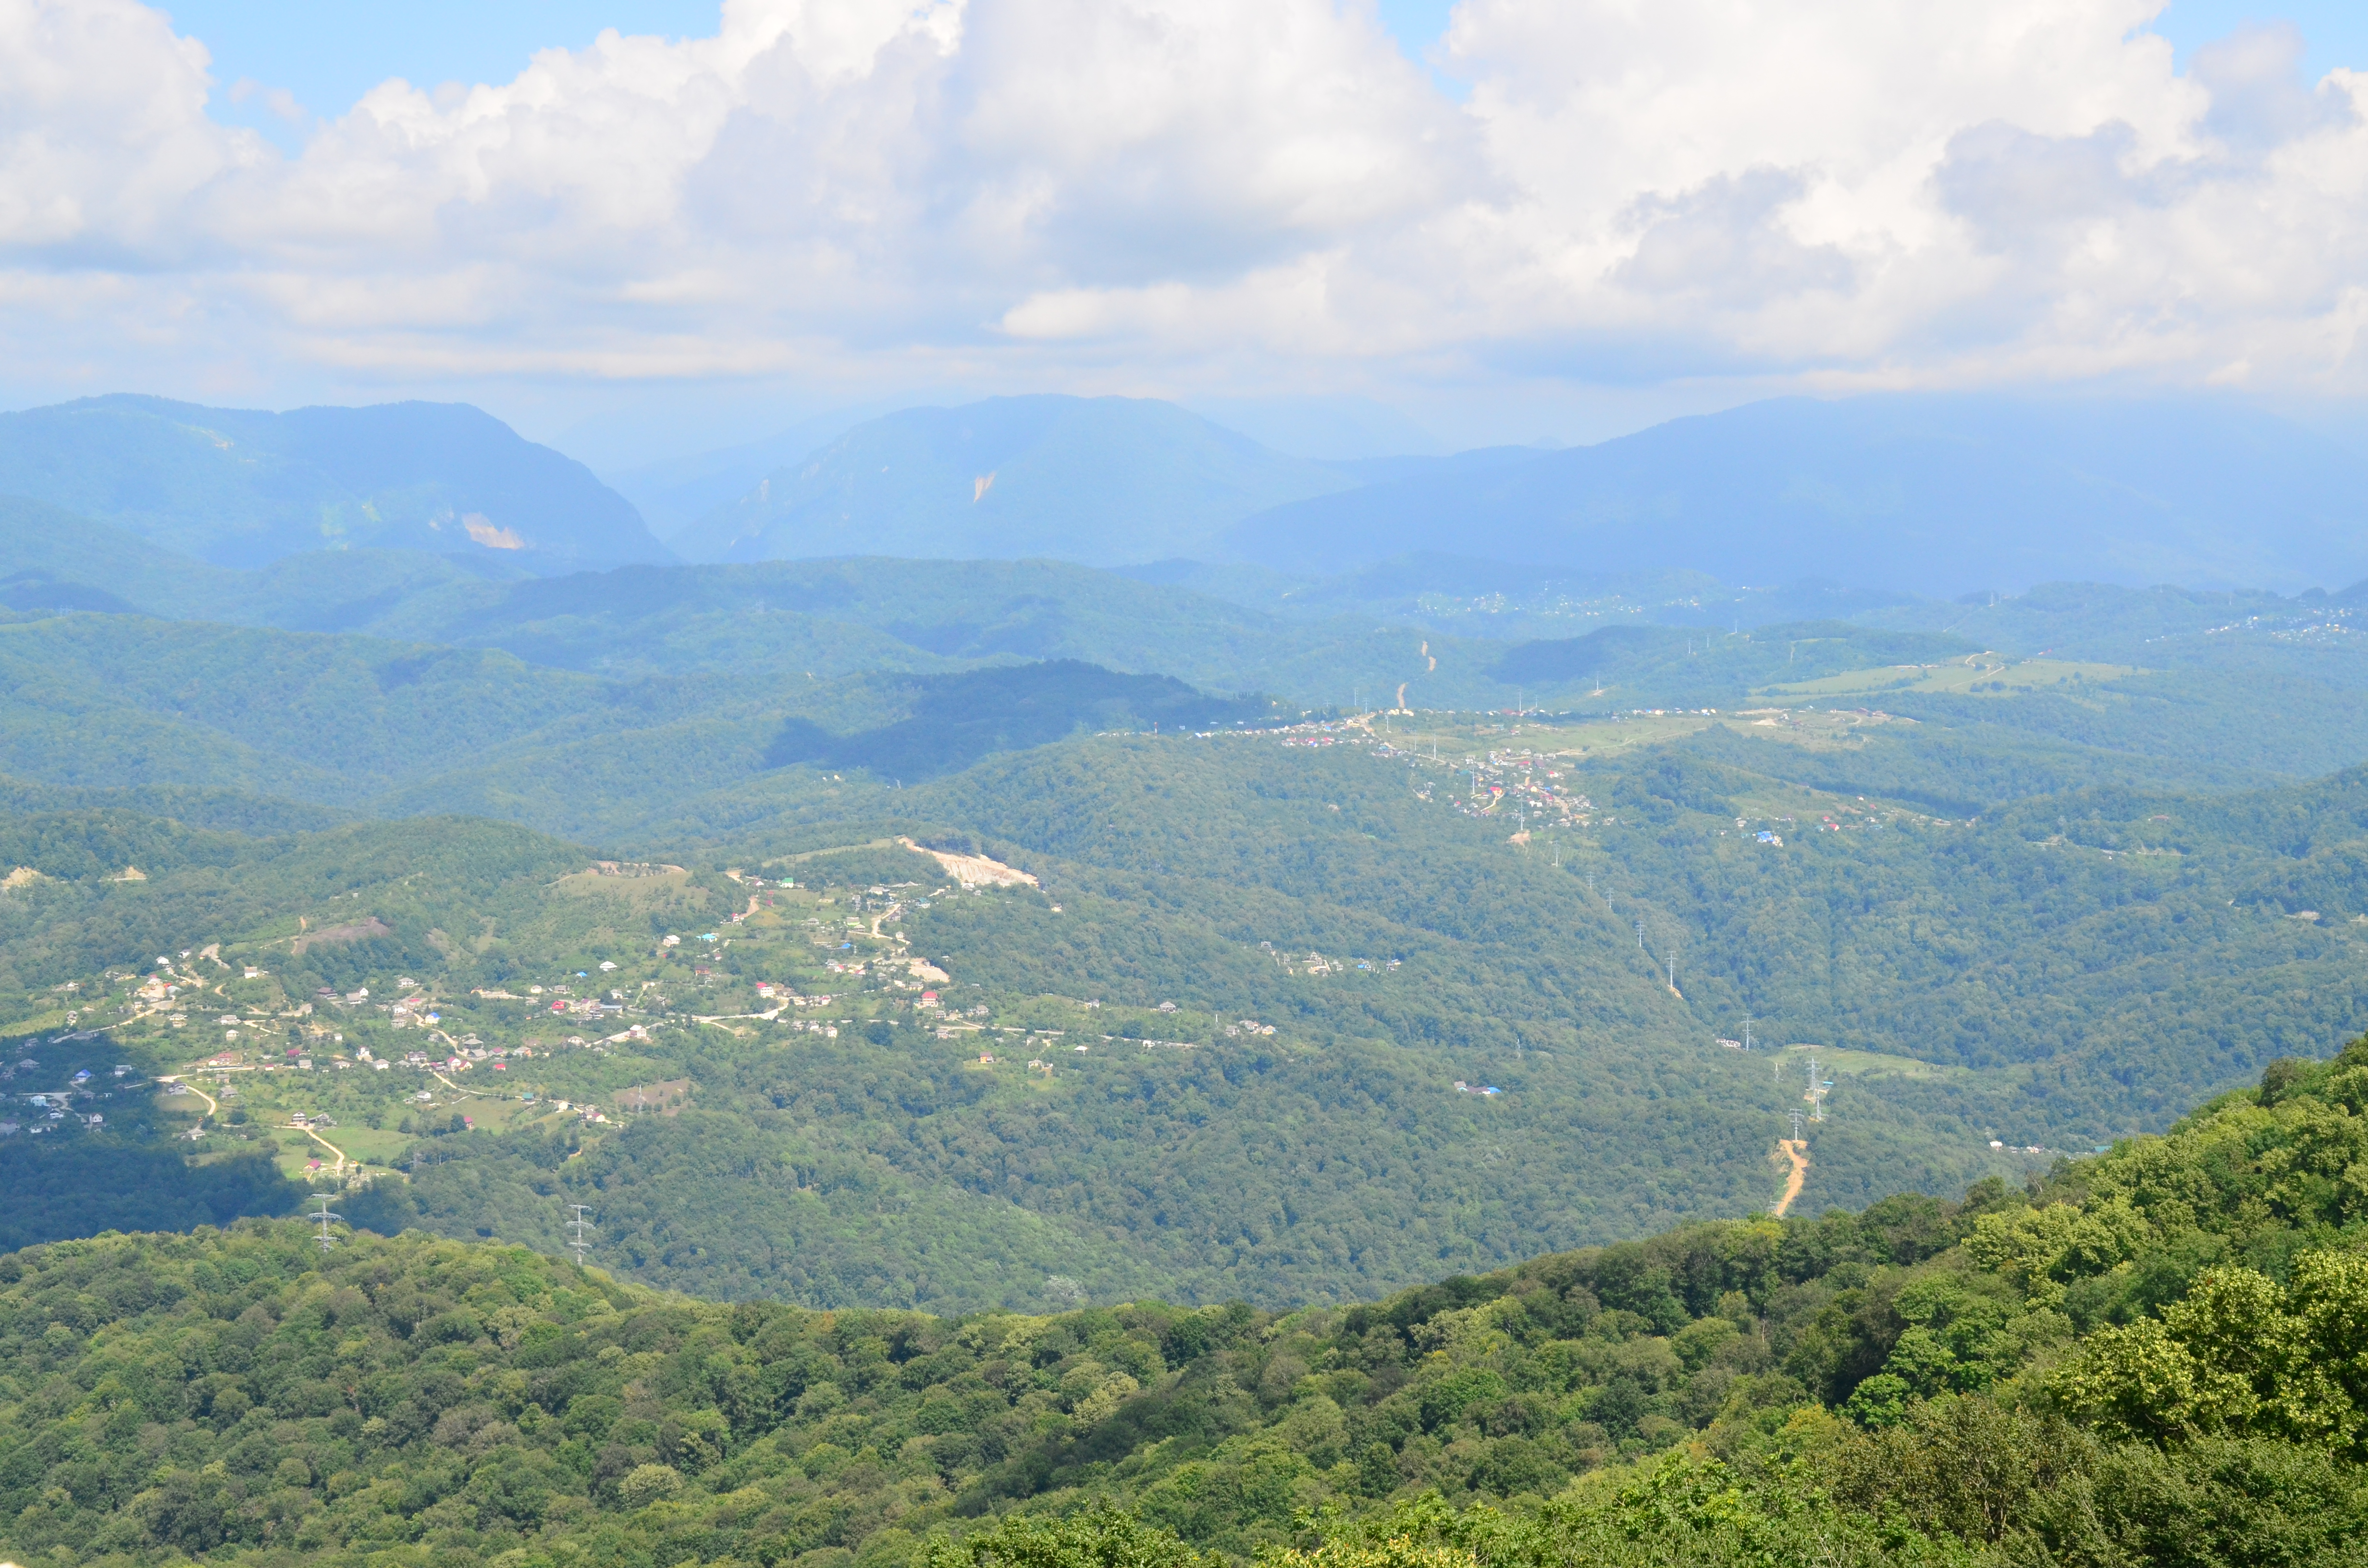 File:View from the top of Akhun mountain.JPG - Wikimedia Commons